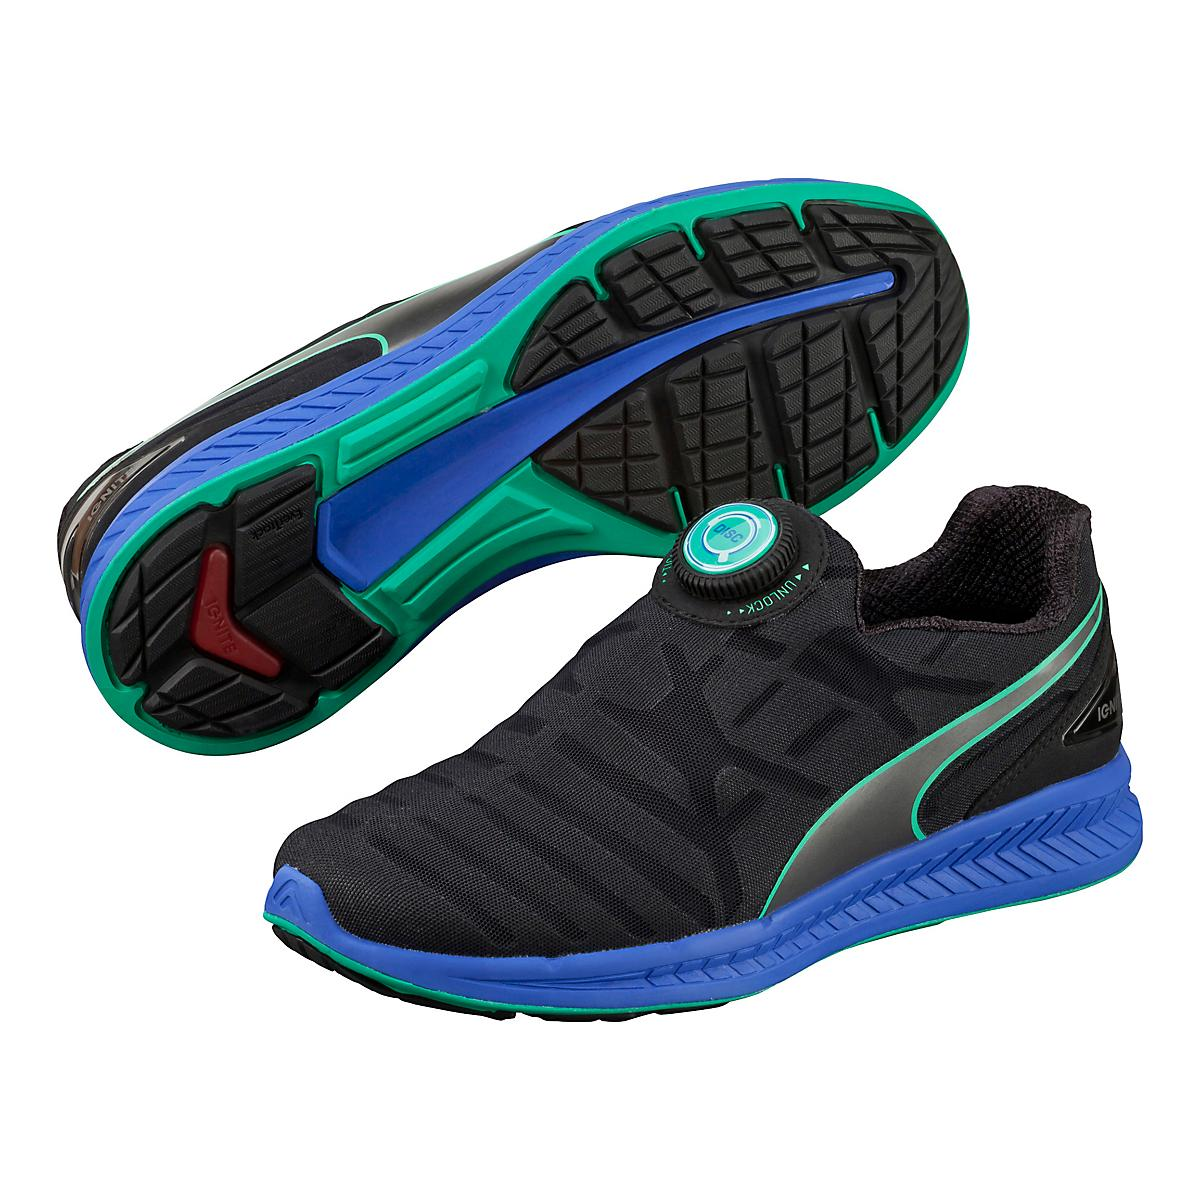 Womens Puma Ignite Disc Running Shoe at Road Runner Sports